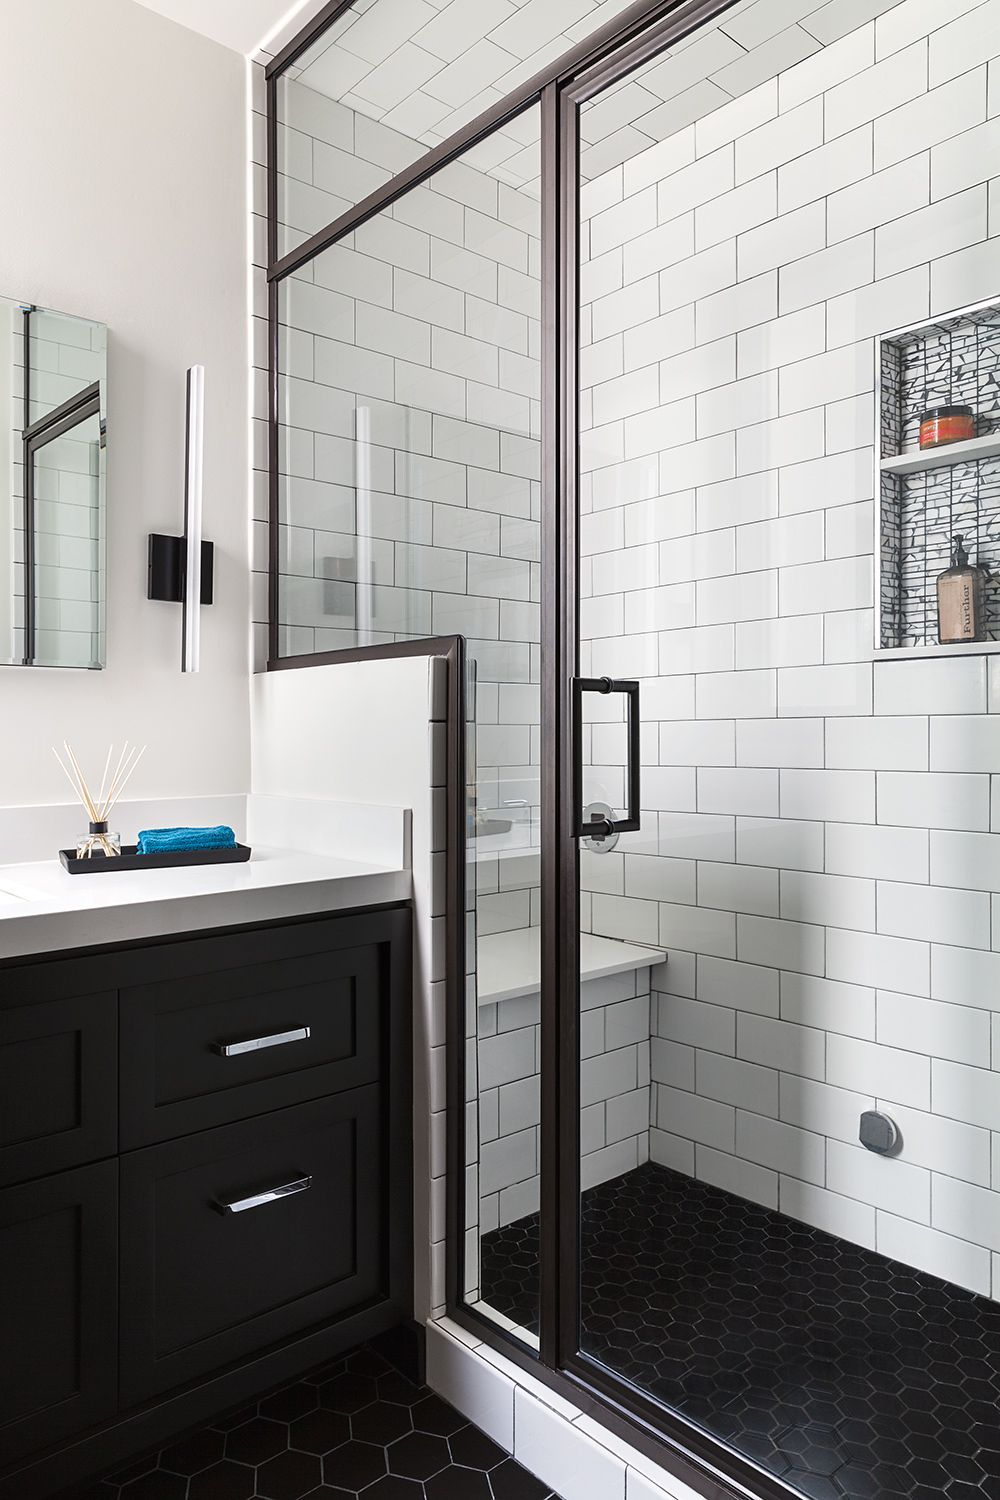 San Francisco Bathroom Remodel, Steam Shower, Black Hex Floor Tiles ...